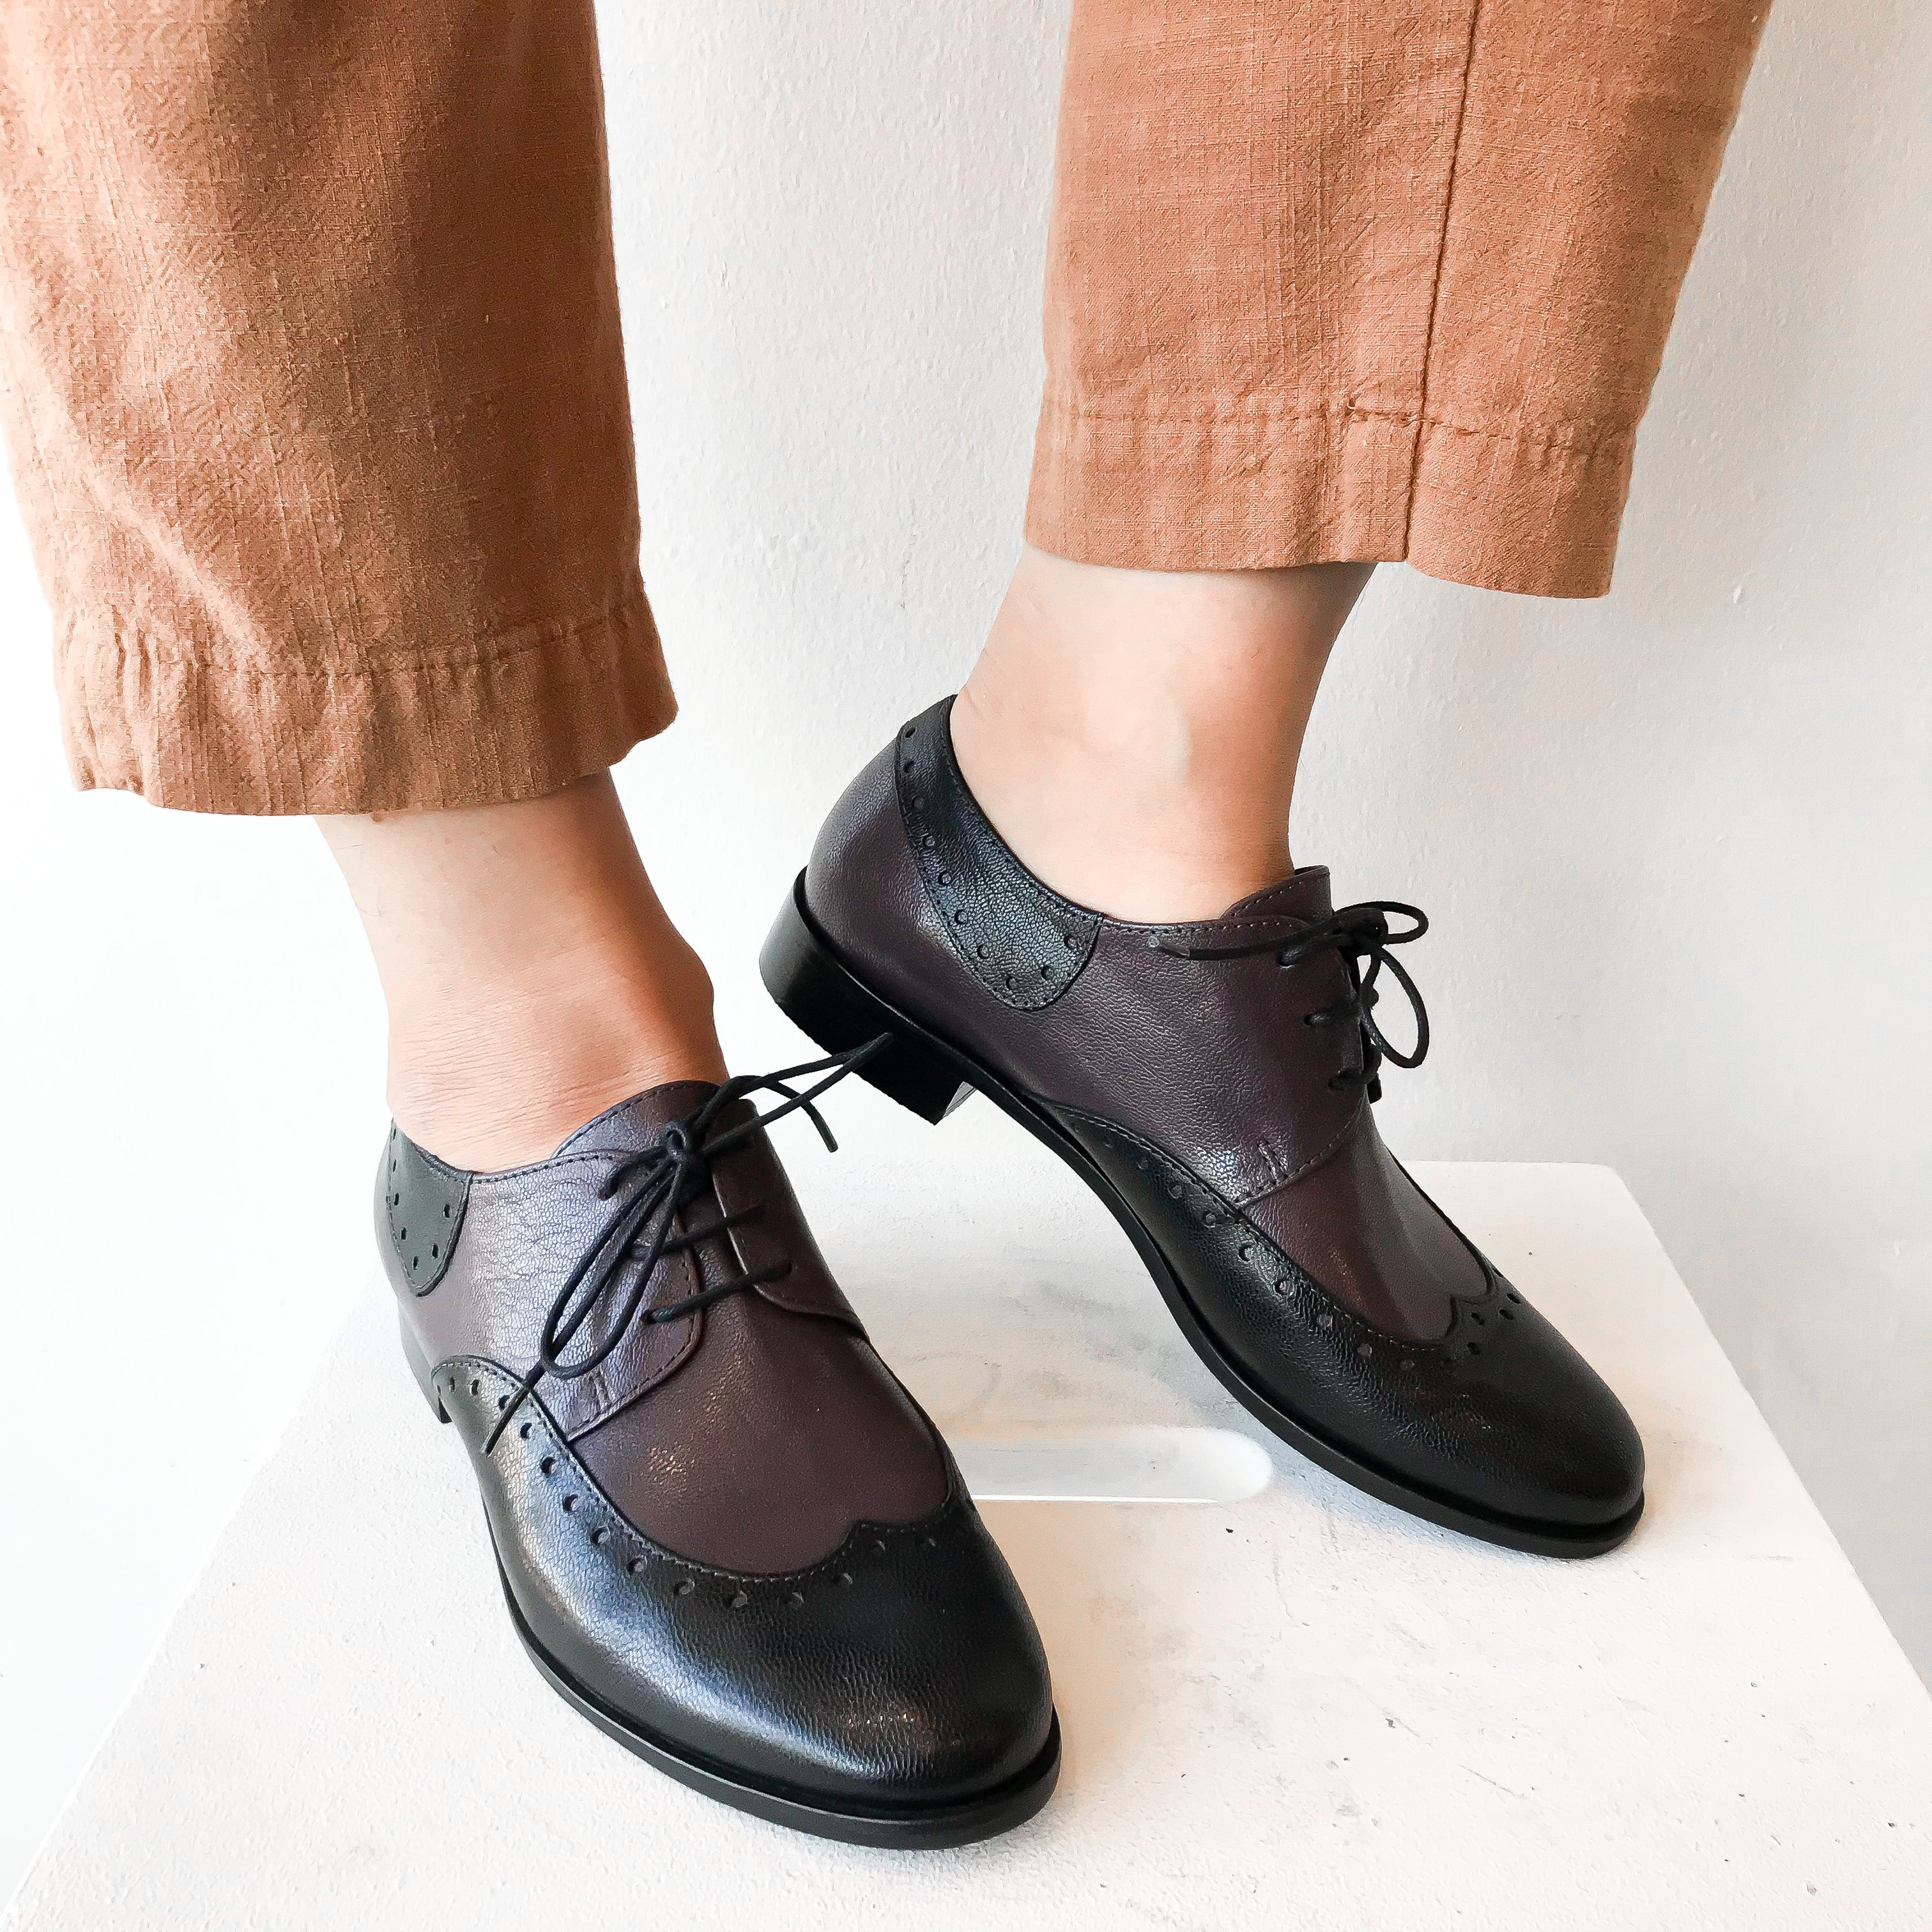 FW20 76154-2 | Classic Oxfords - Black/C | Yuko Imanishi+